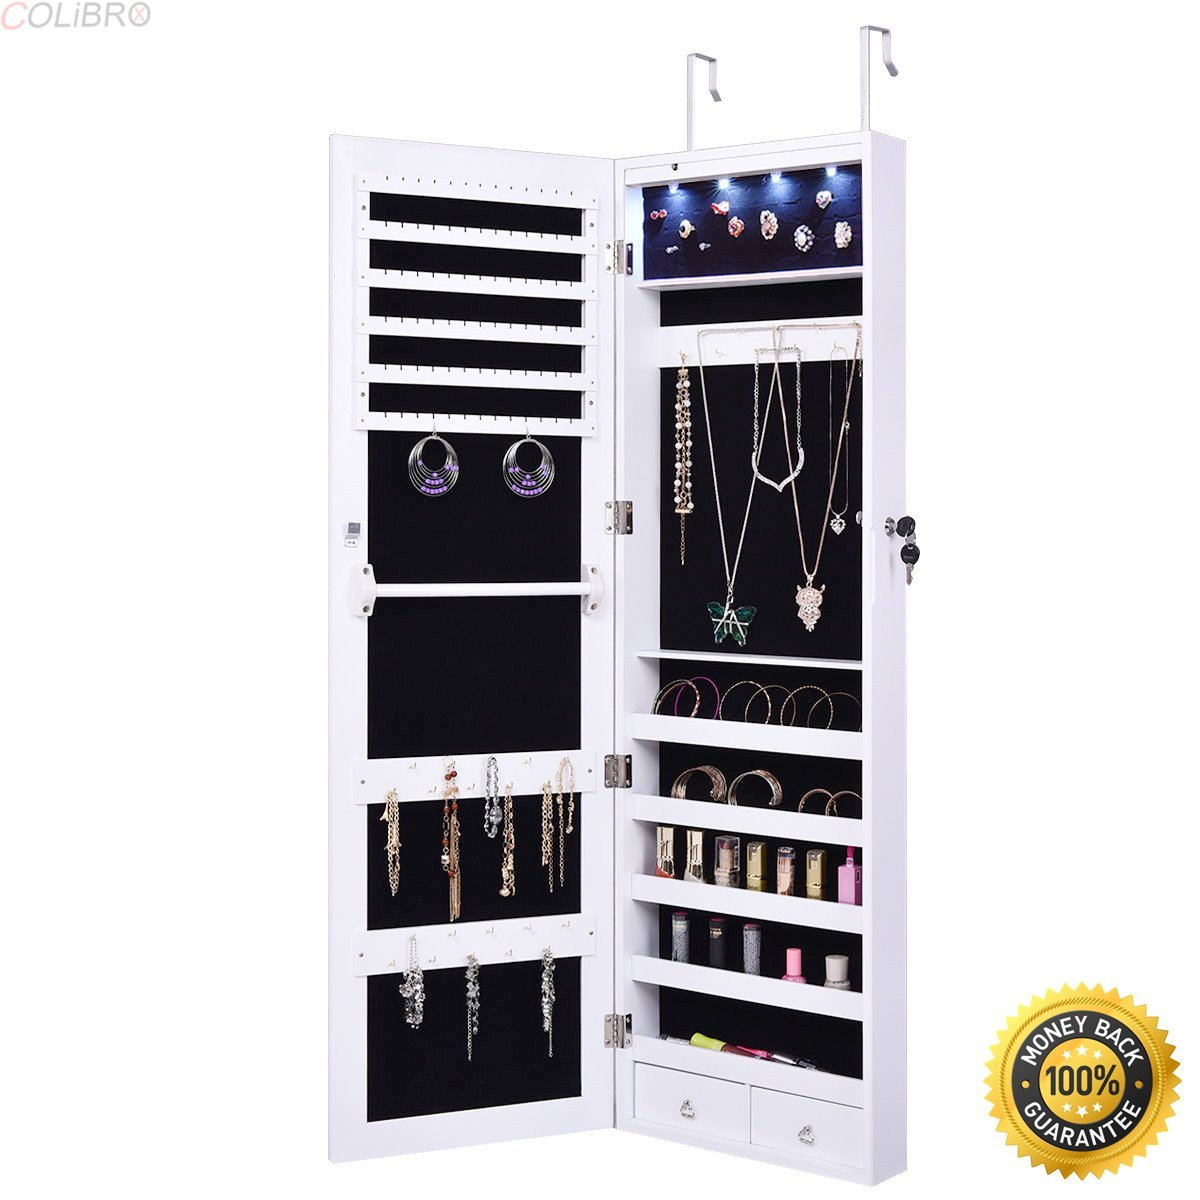 COLIBROX--Door Mount Mirrored Jewelry Cabinet Lockable Armoire Organizer w/LED Lights New,locking jewelry armoire,locking jewelry armoire floor standing,jewelry box for necklaces,jewelry gift box